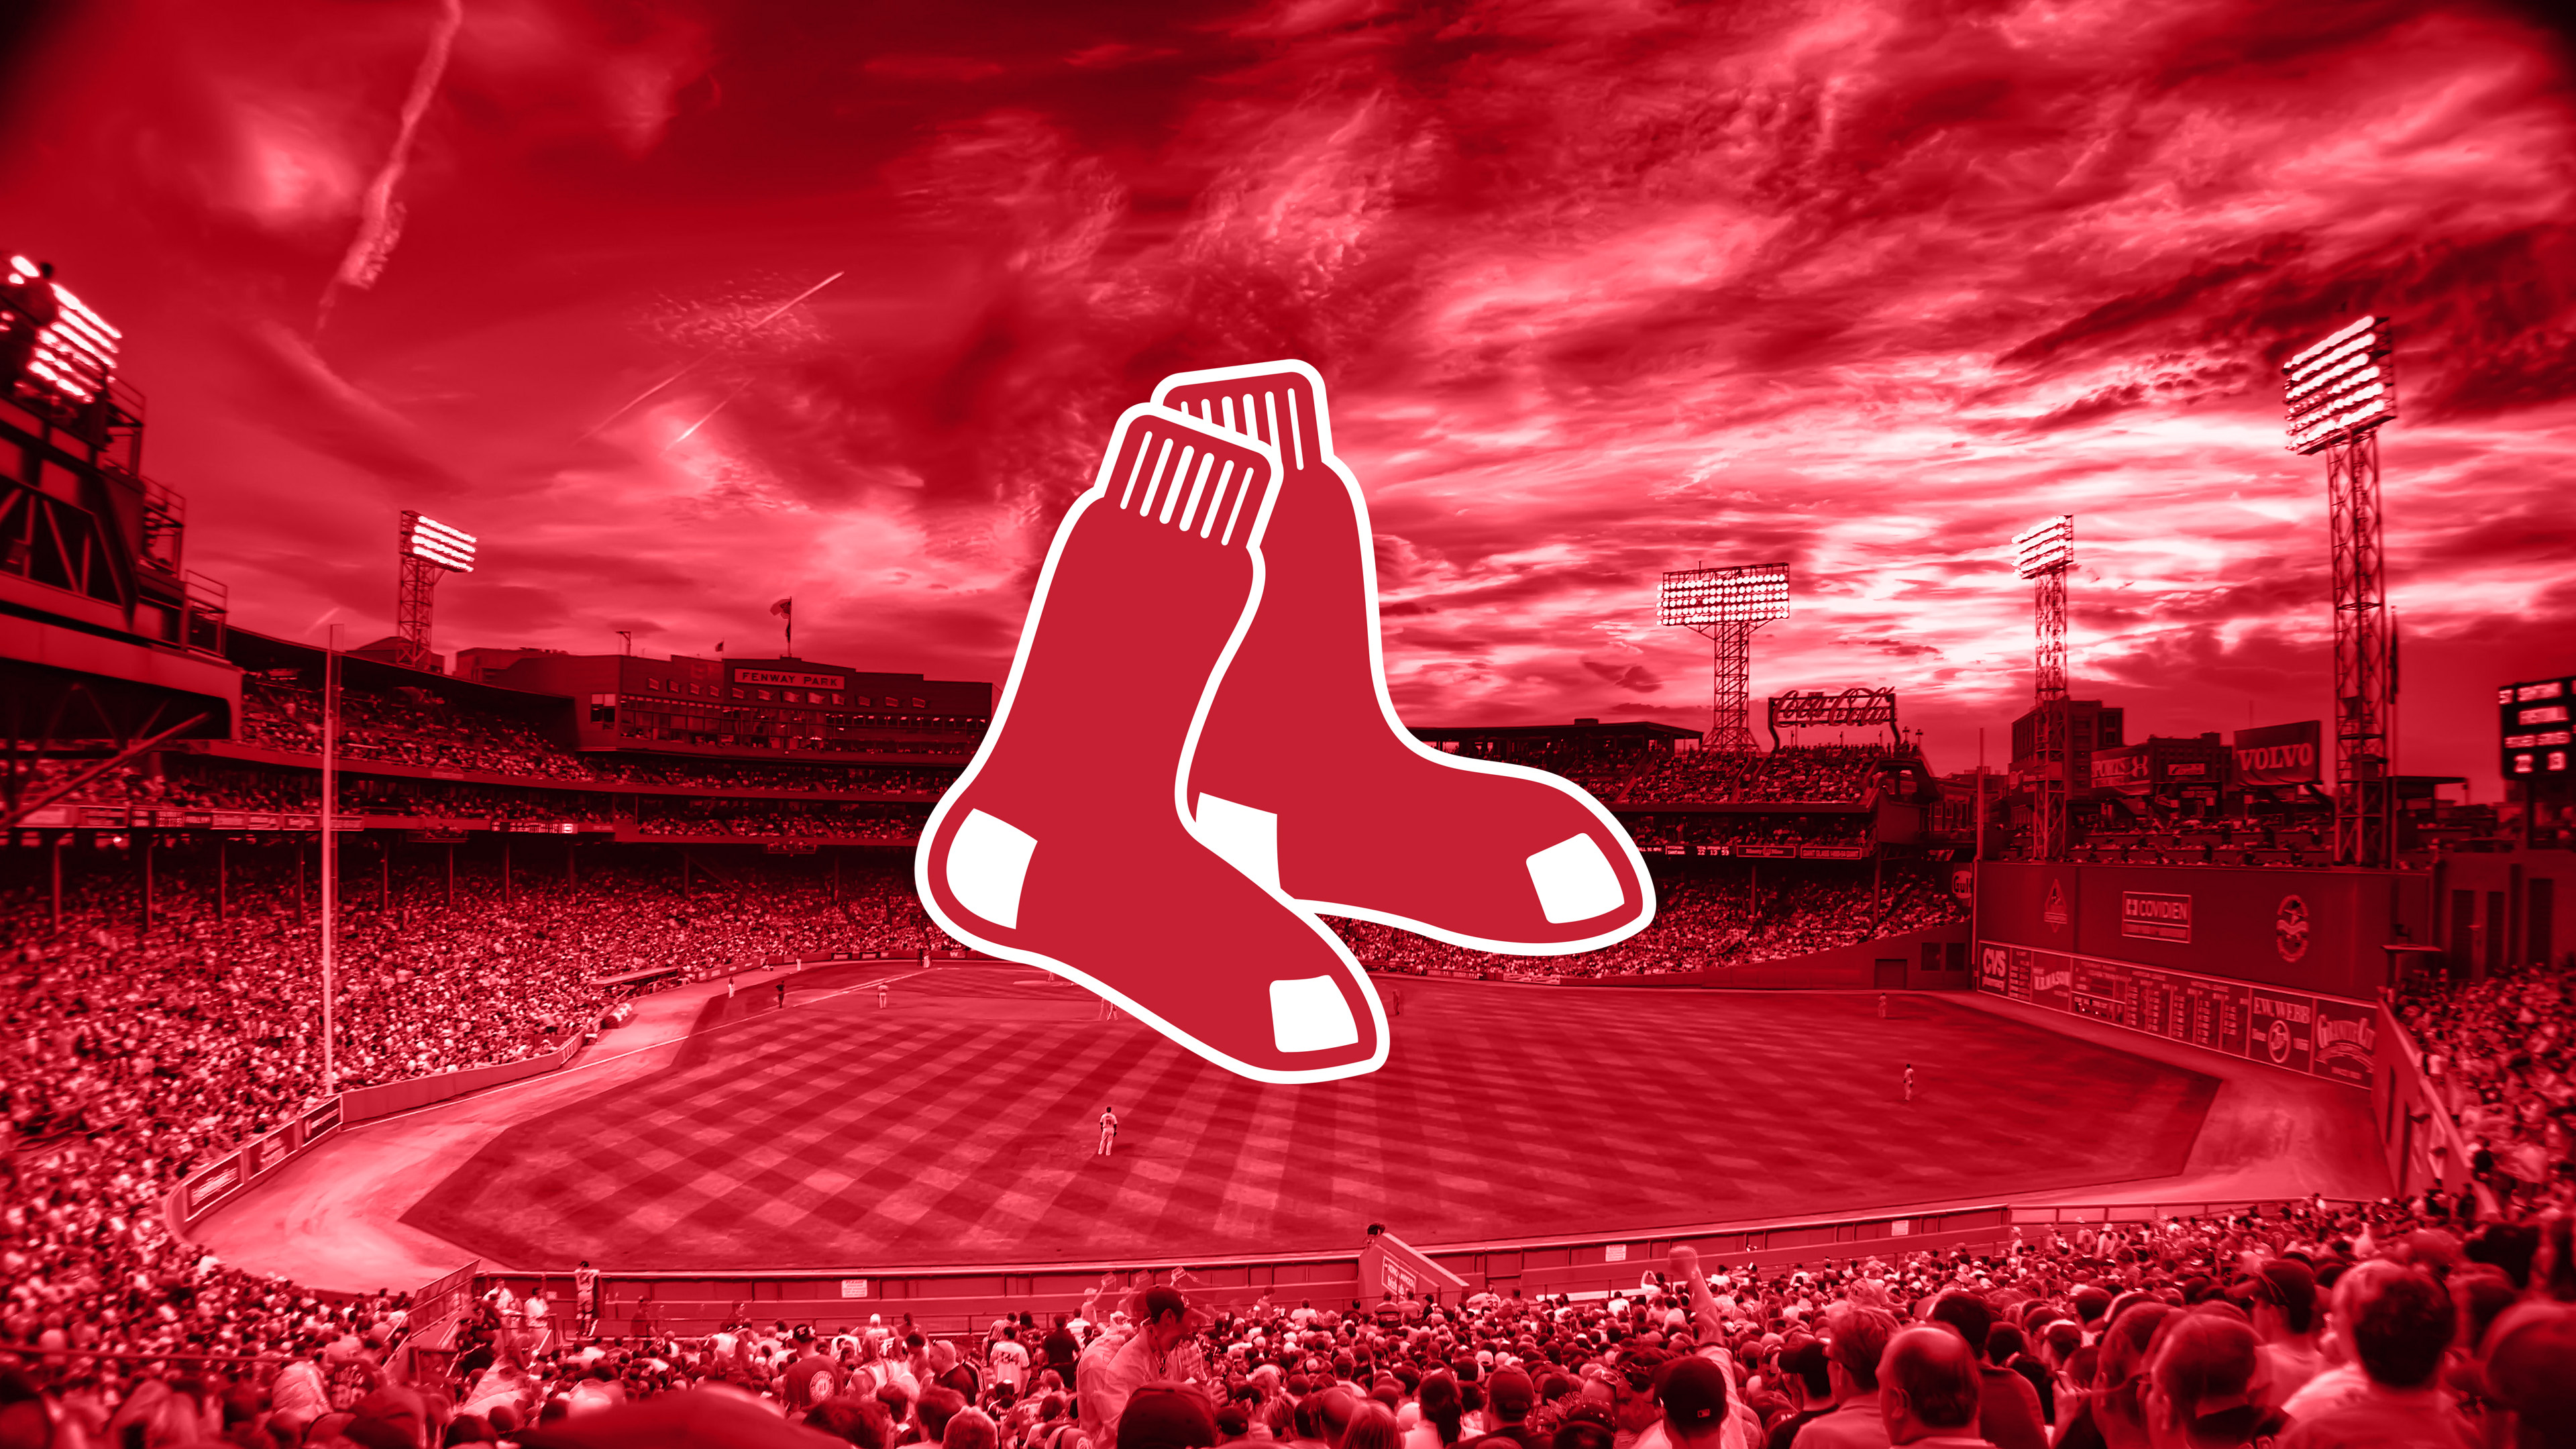 Boston Red Sox Logo Desktop Backgrounds 3840x2160